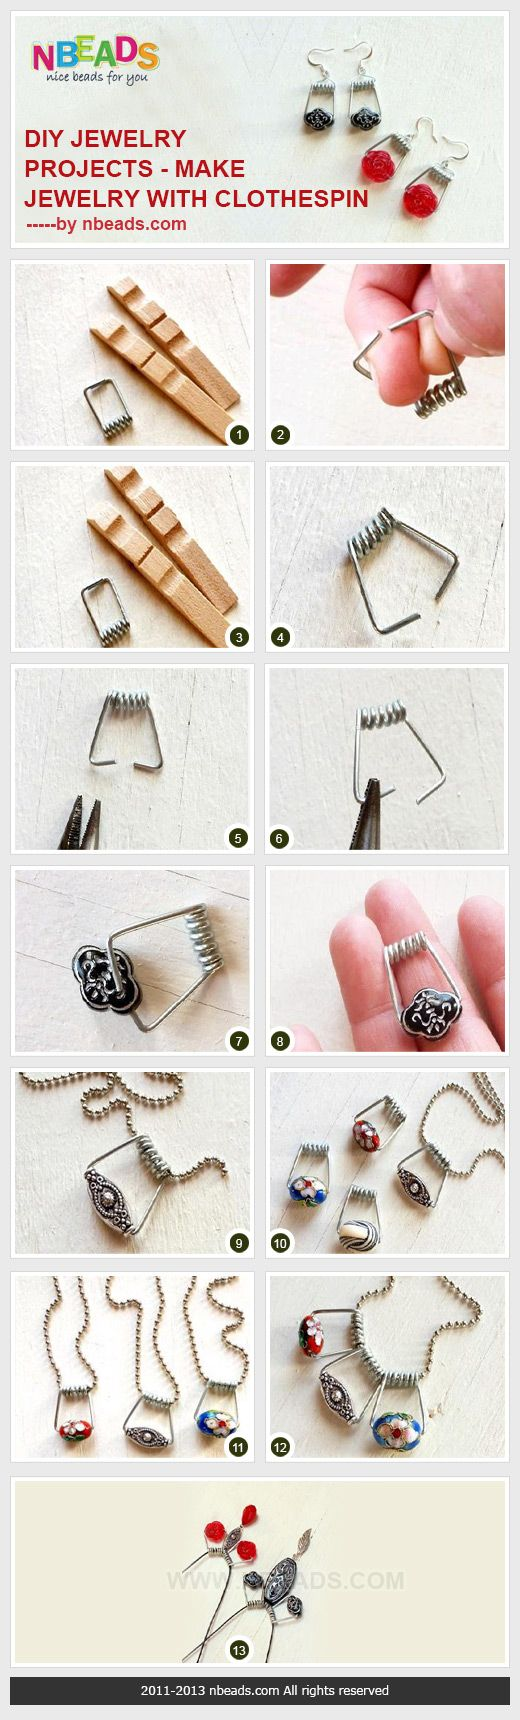 diy jewelry projects - make jewelry with clothespin